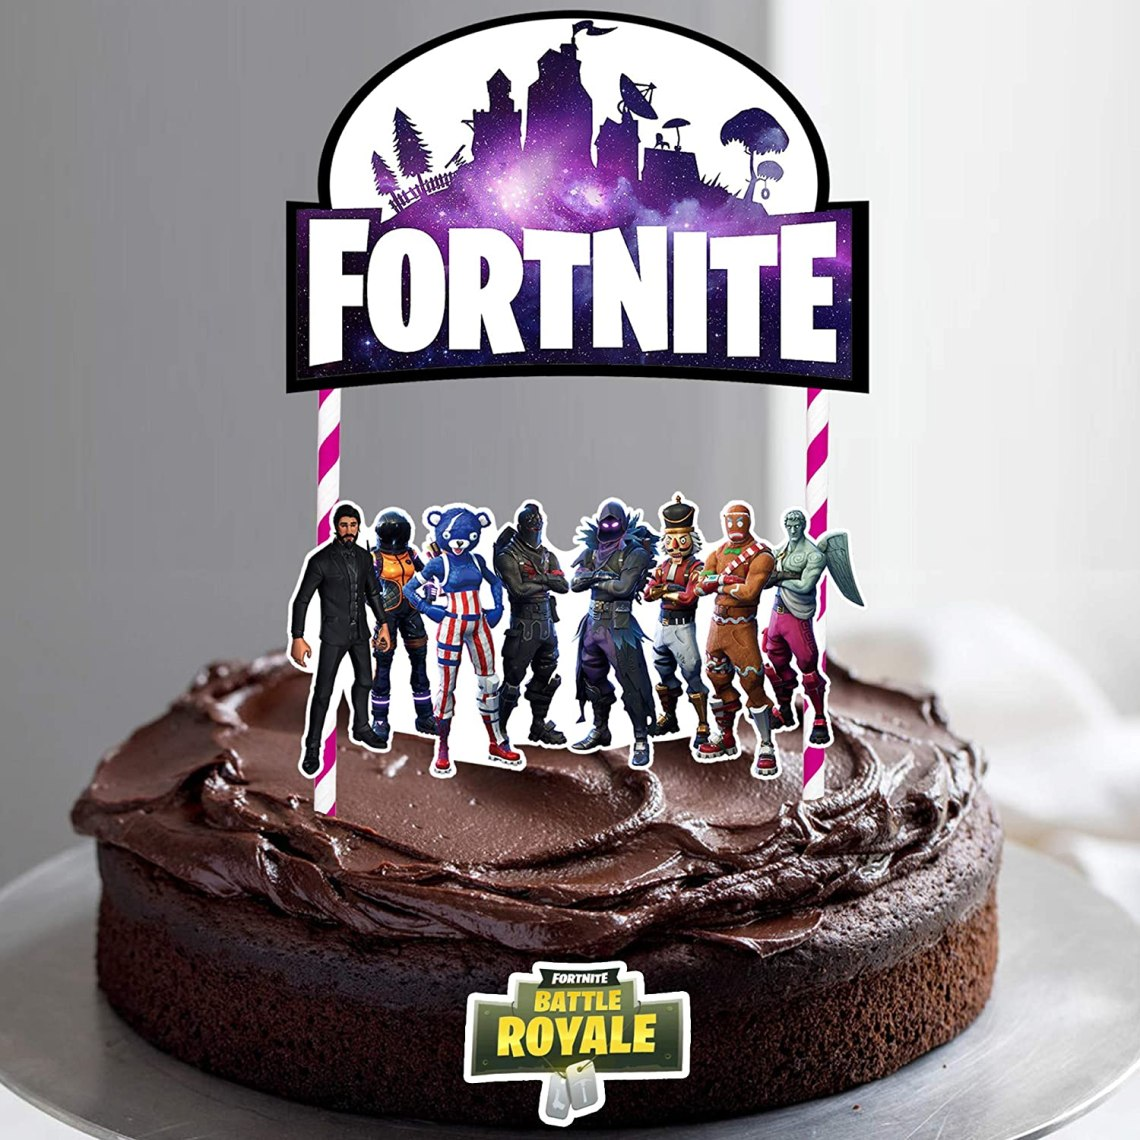 Phenomenal Easy Video Game Cake Ideas The Cake Boutique Funny Birthday Cards Online Drosicarndamsfinfo